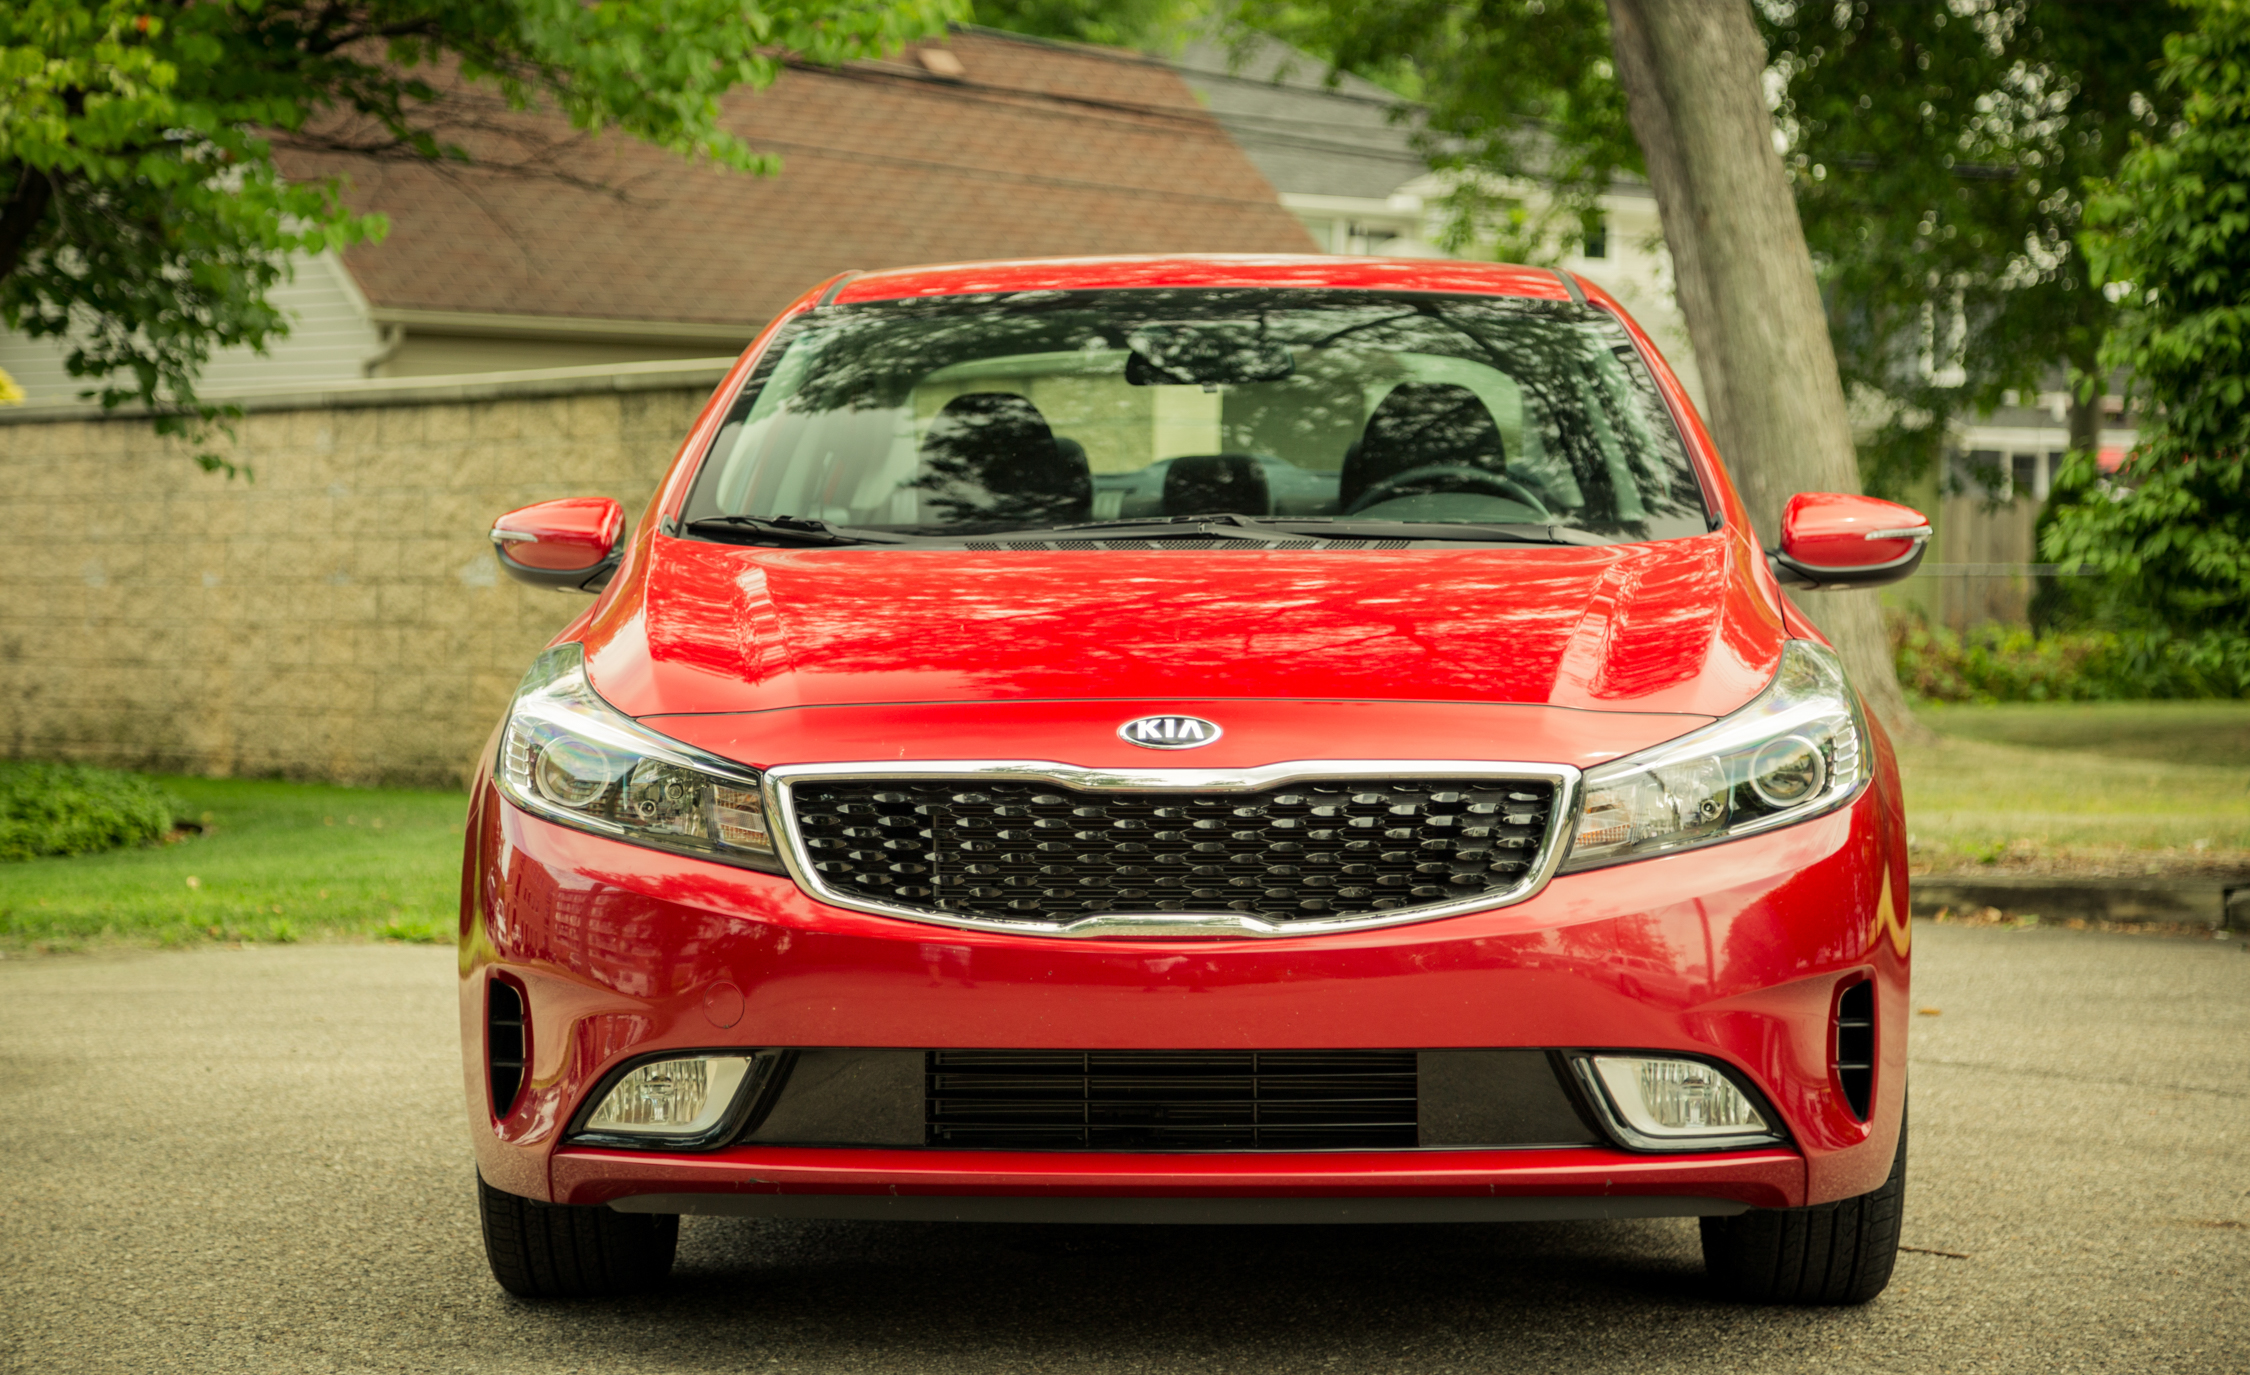 2017 Kia Forte Exterior Front (Photo 3 of 13)